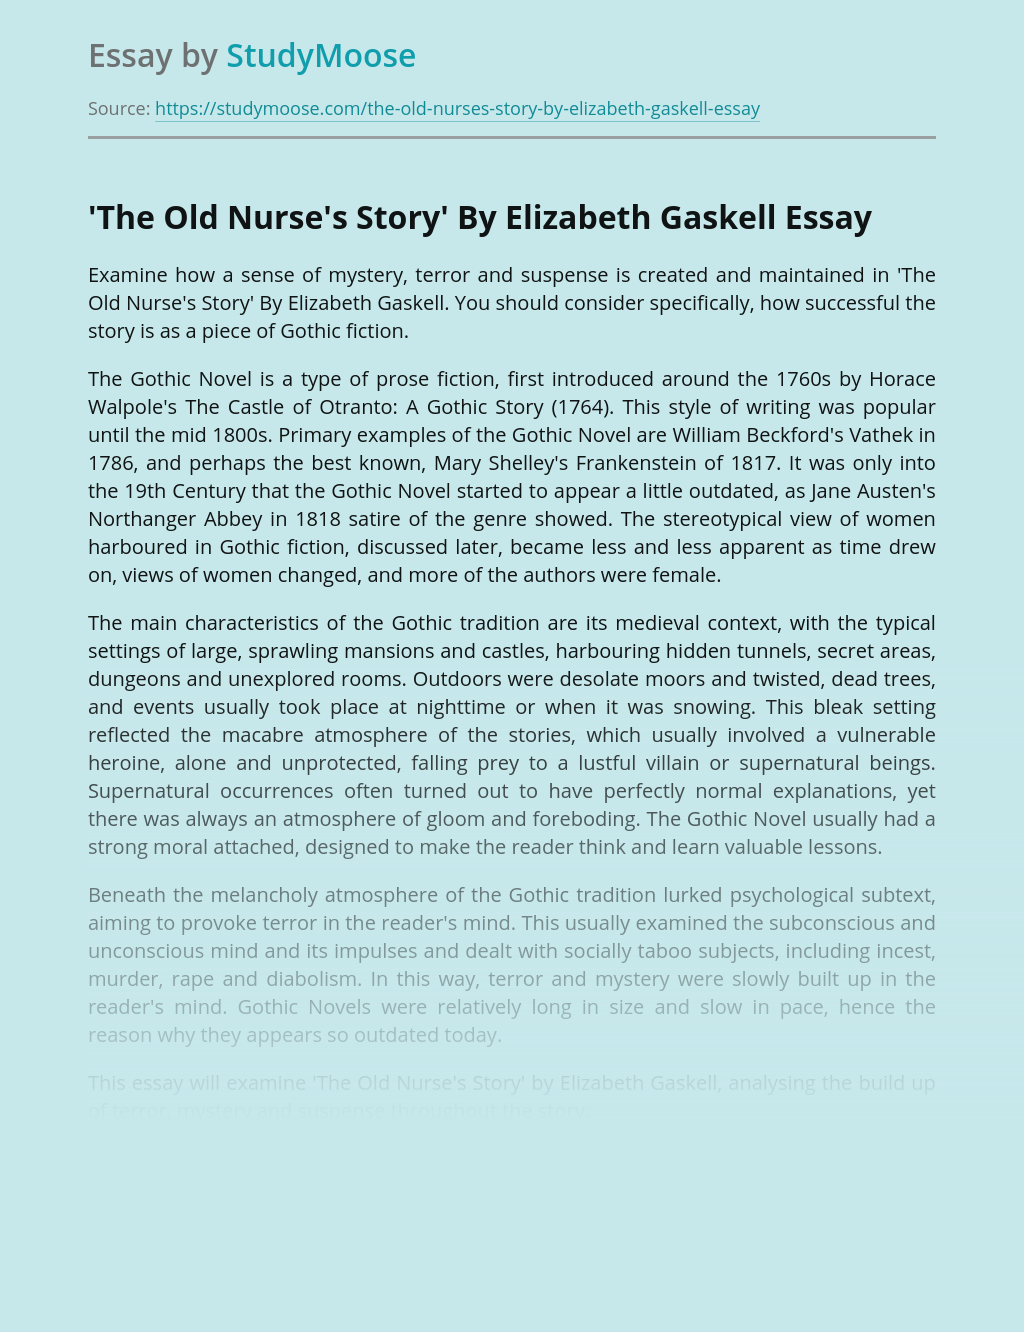 'The Old Nurse's Story' By Elizabeth Gaskell